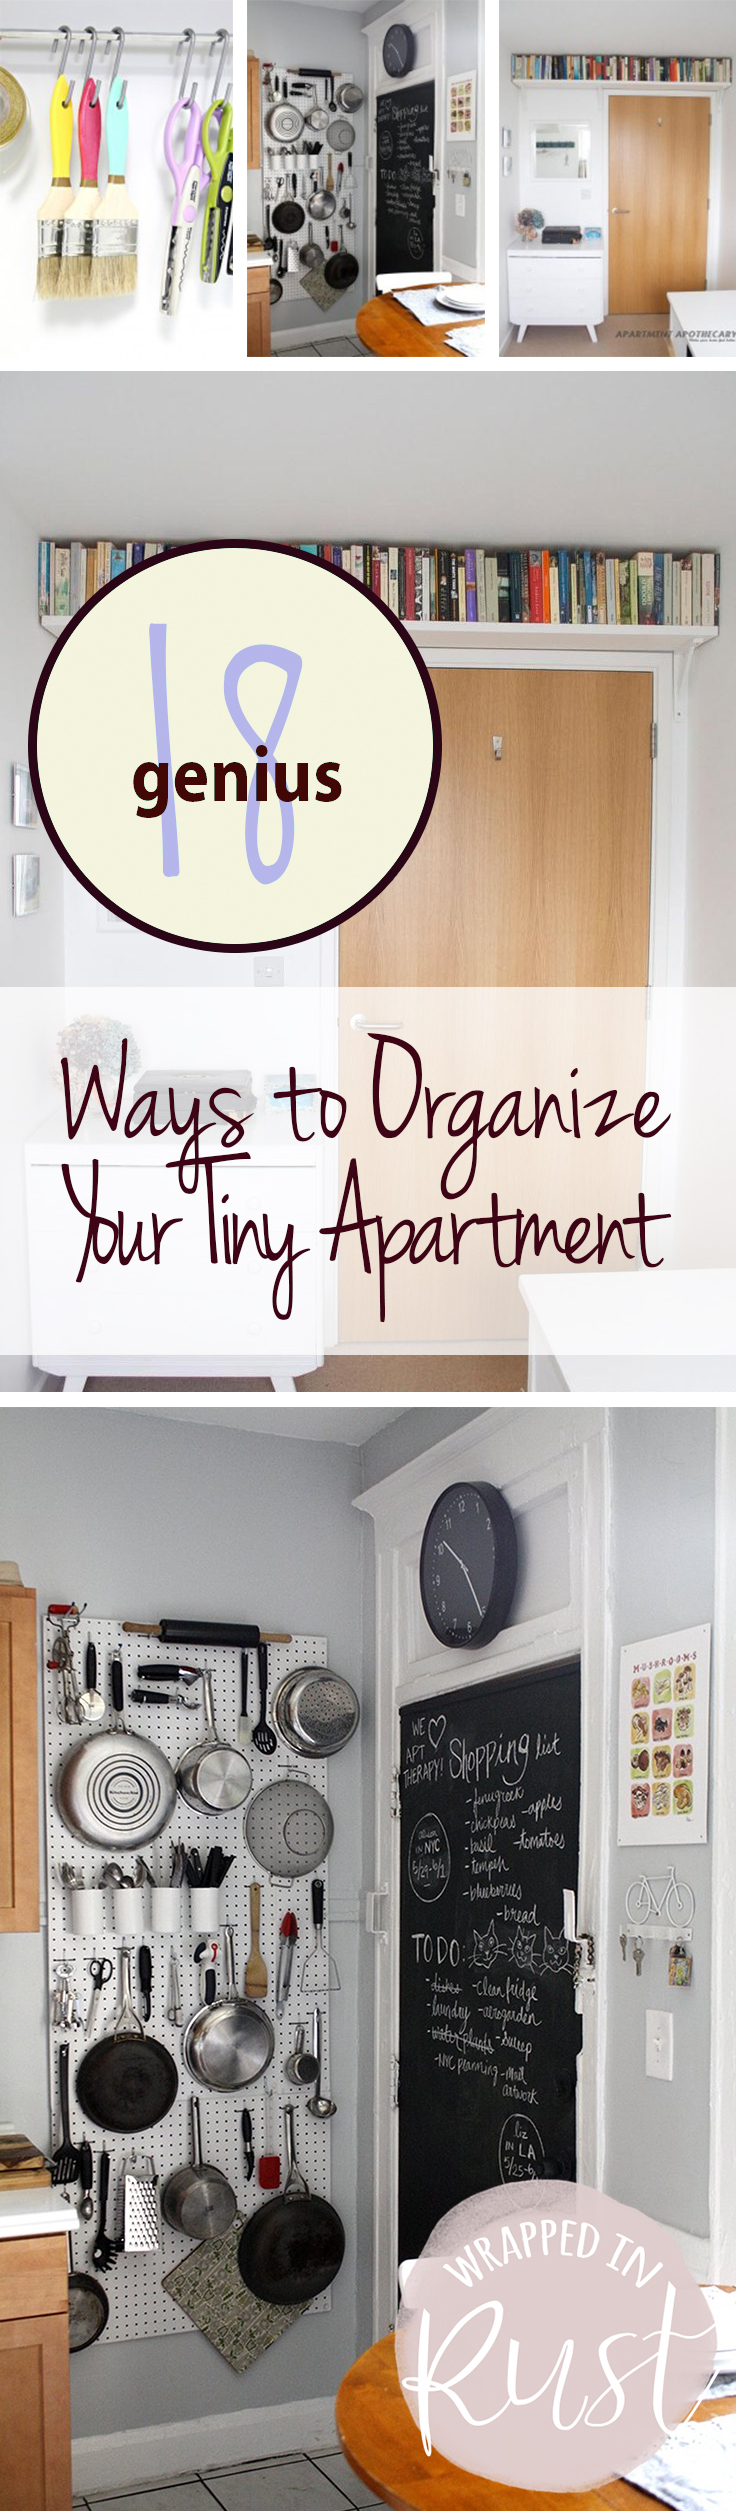 18 Genius Ways to Organize Your Teeny Apartment - Wrapped in ...